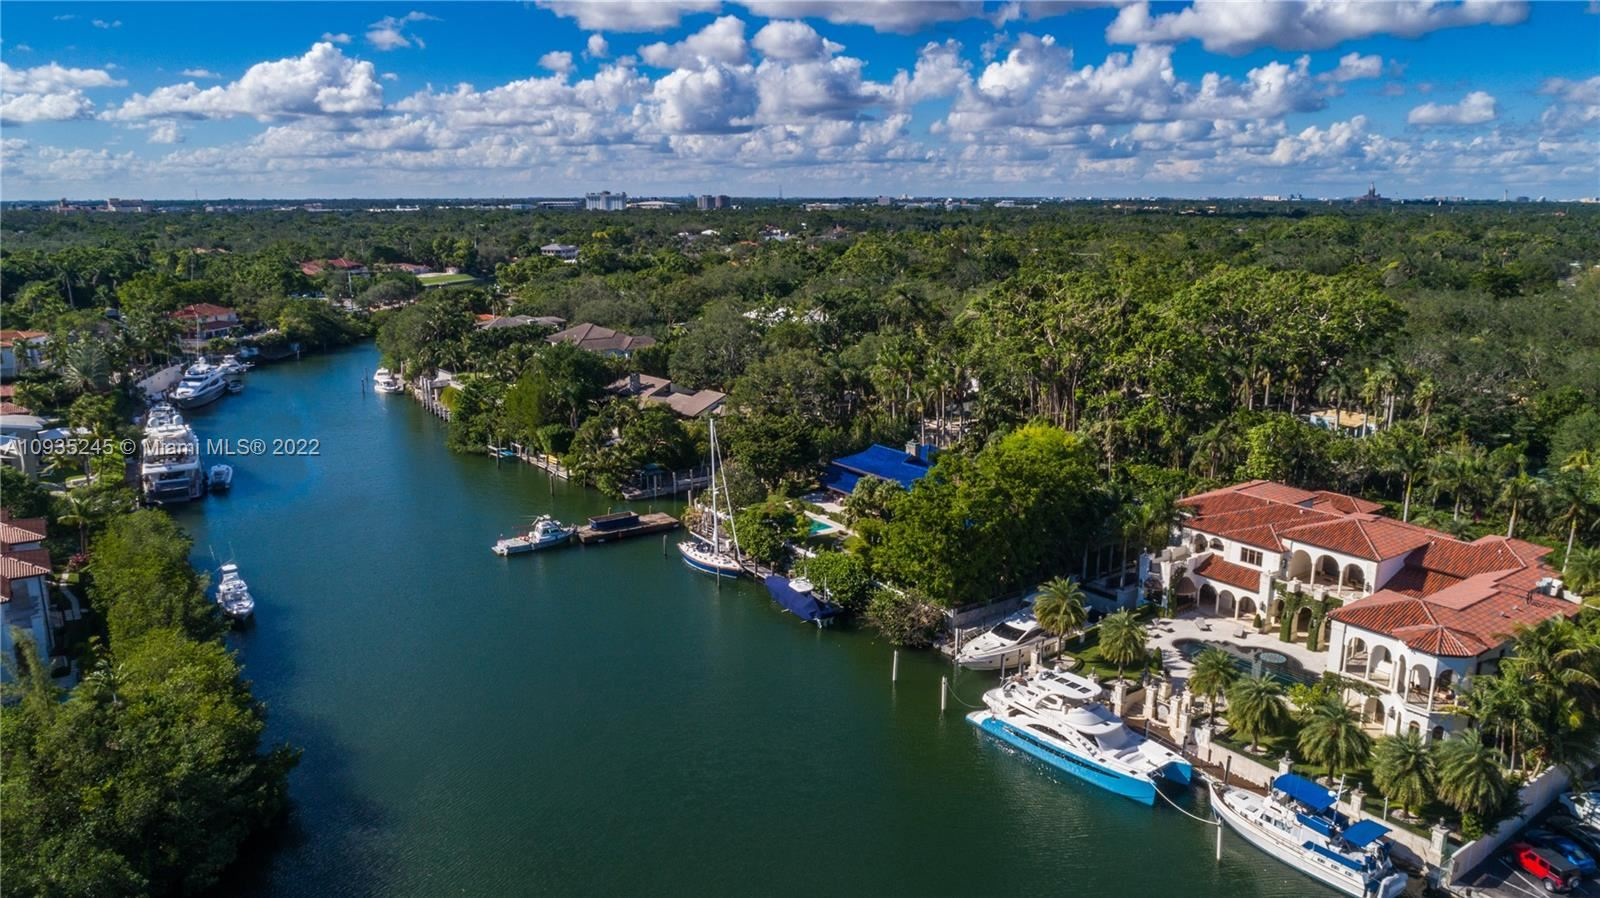 150 Edgewater Dr, Coral Gables, FL 33133 - #: A10935245